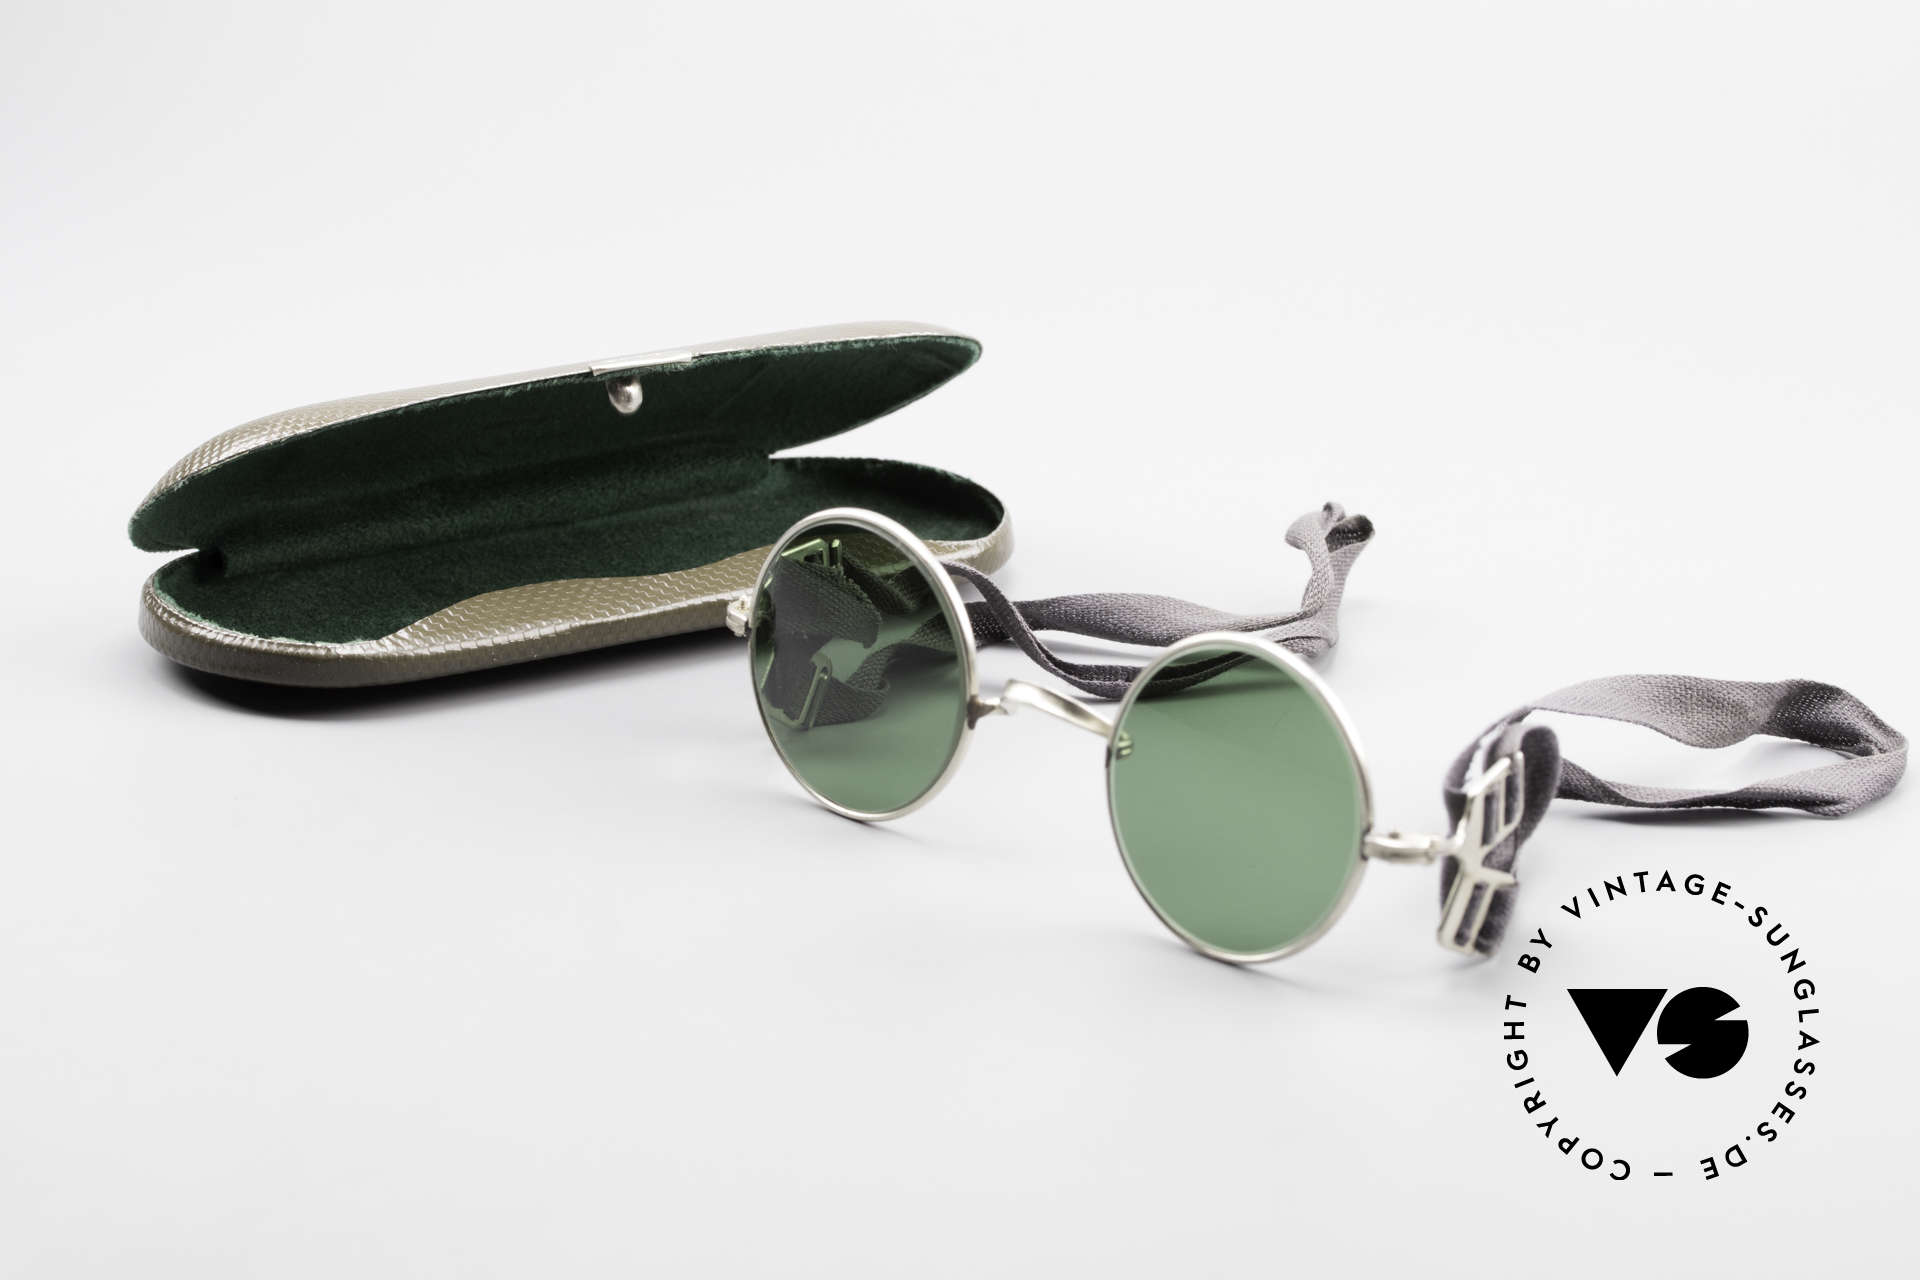 Militärbrille Round Old Army Military Sunglasses, Size: extra small, Made for Men